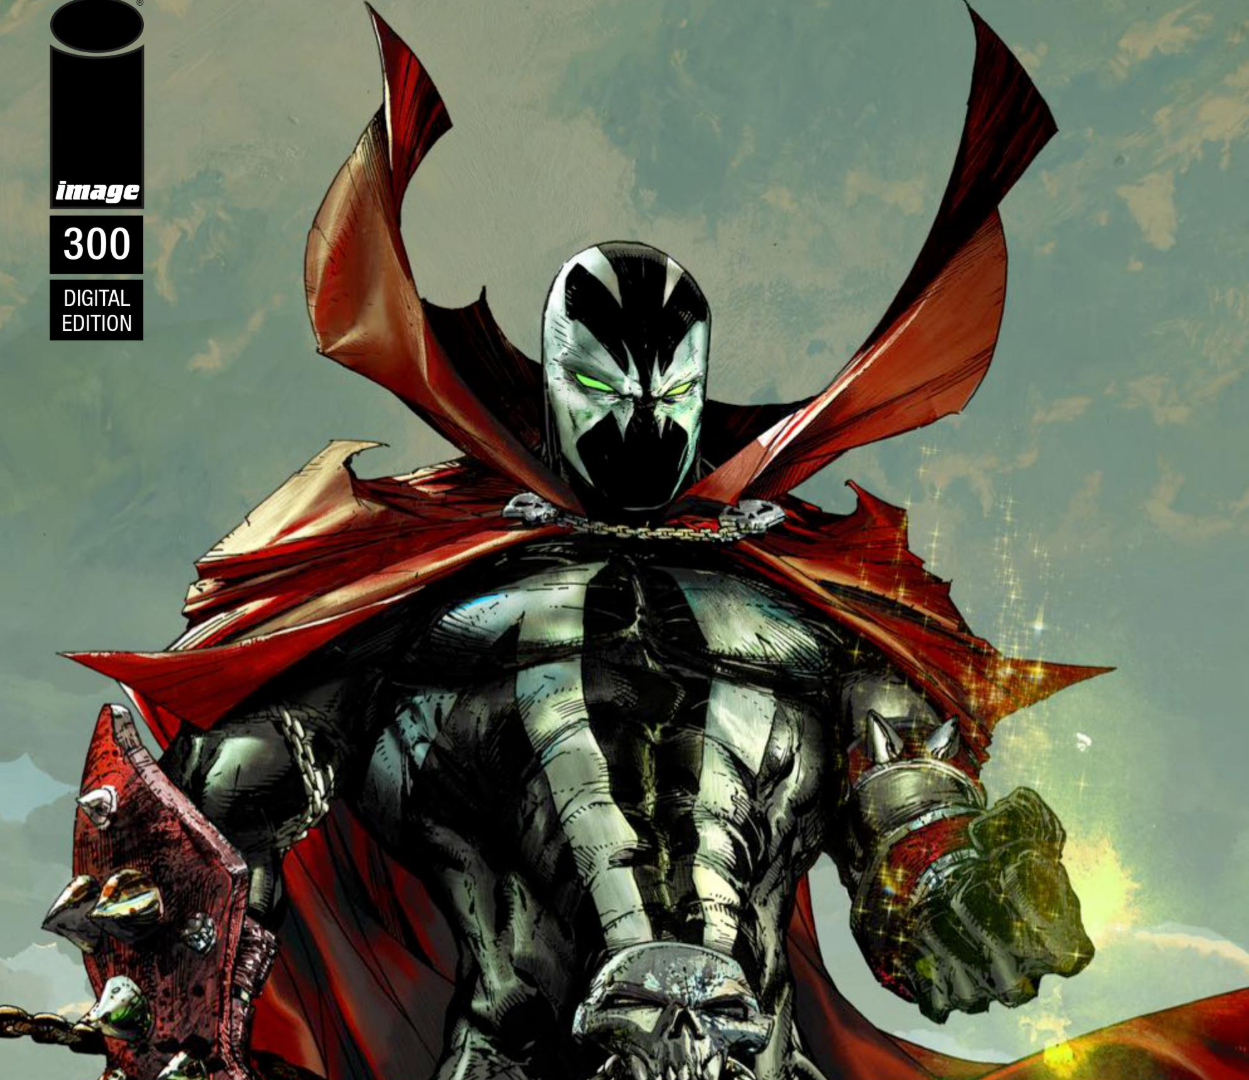 Past, present, and future collide for Spawn/Al Simmons.